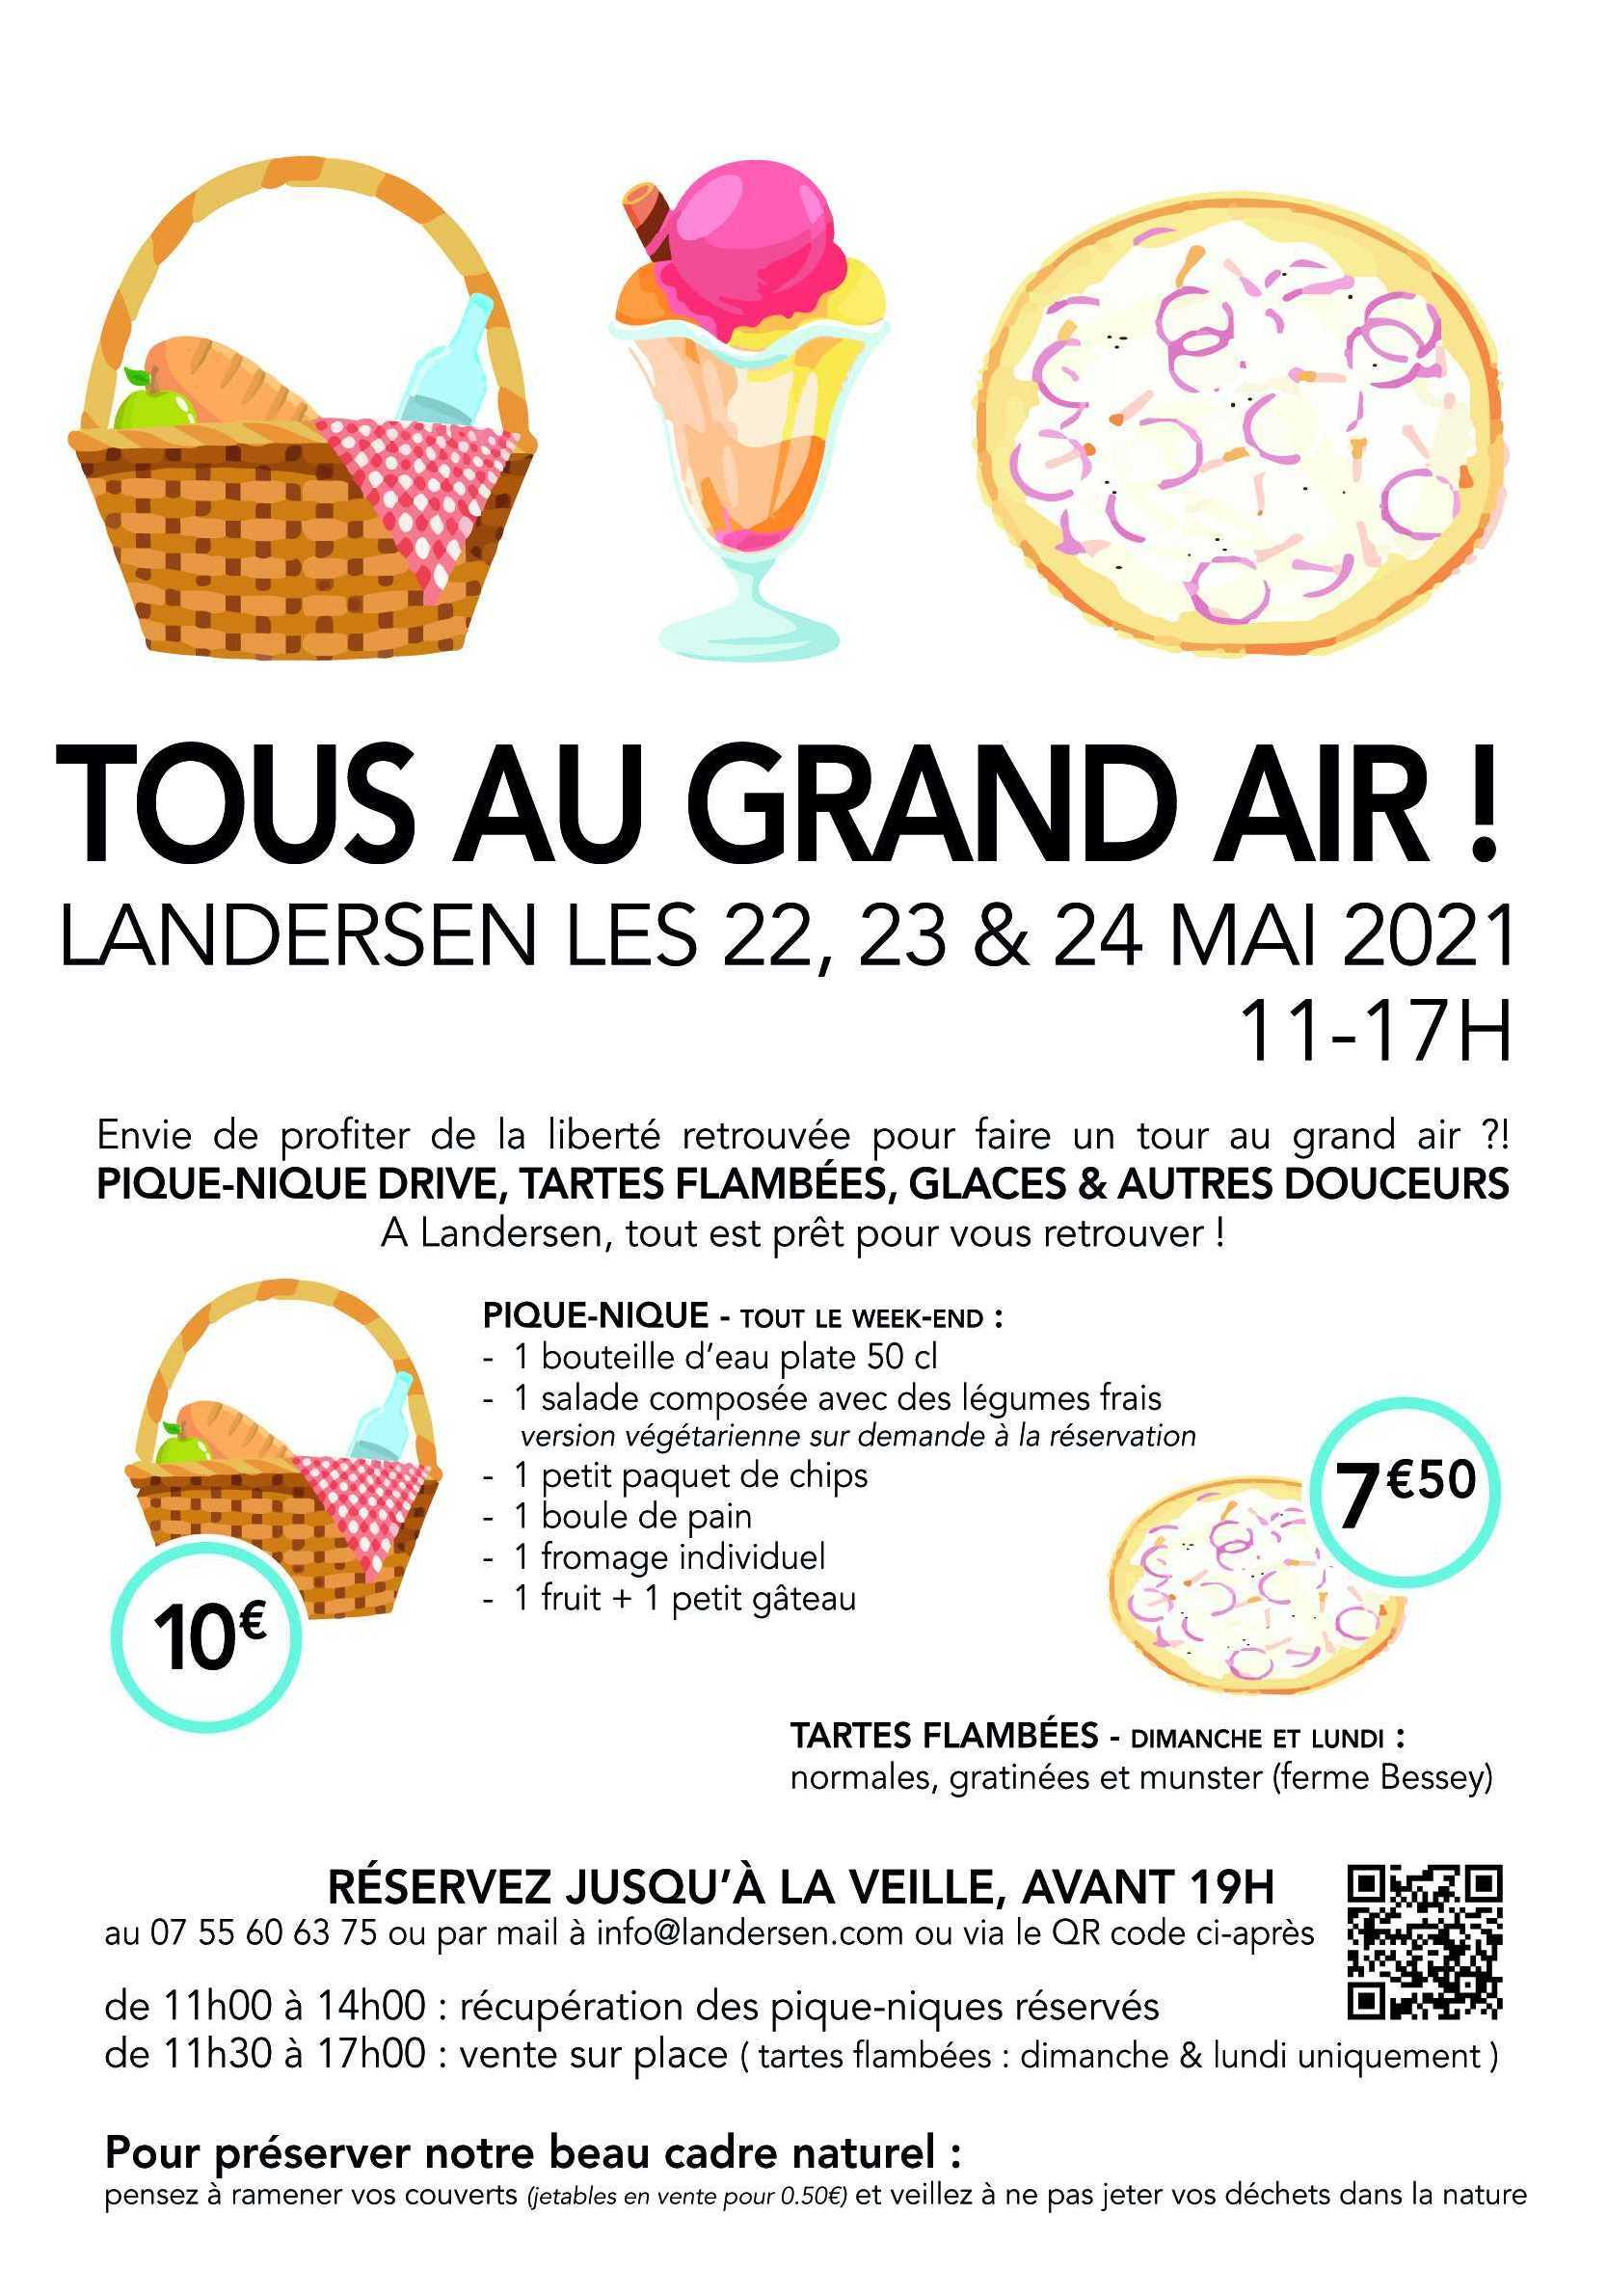 image tous au grand air